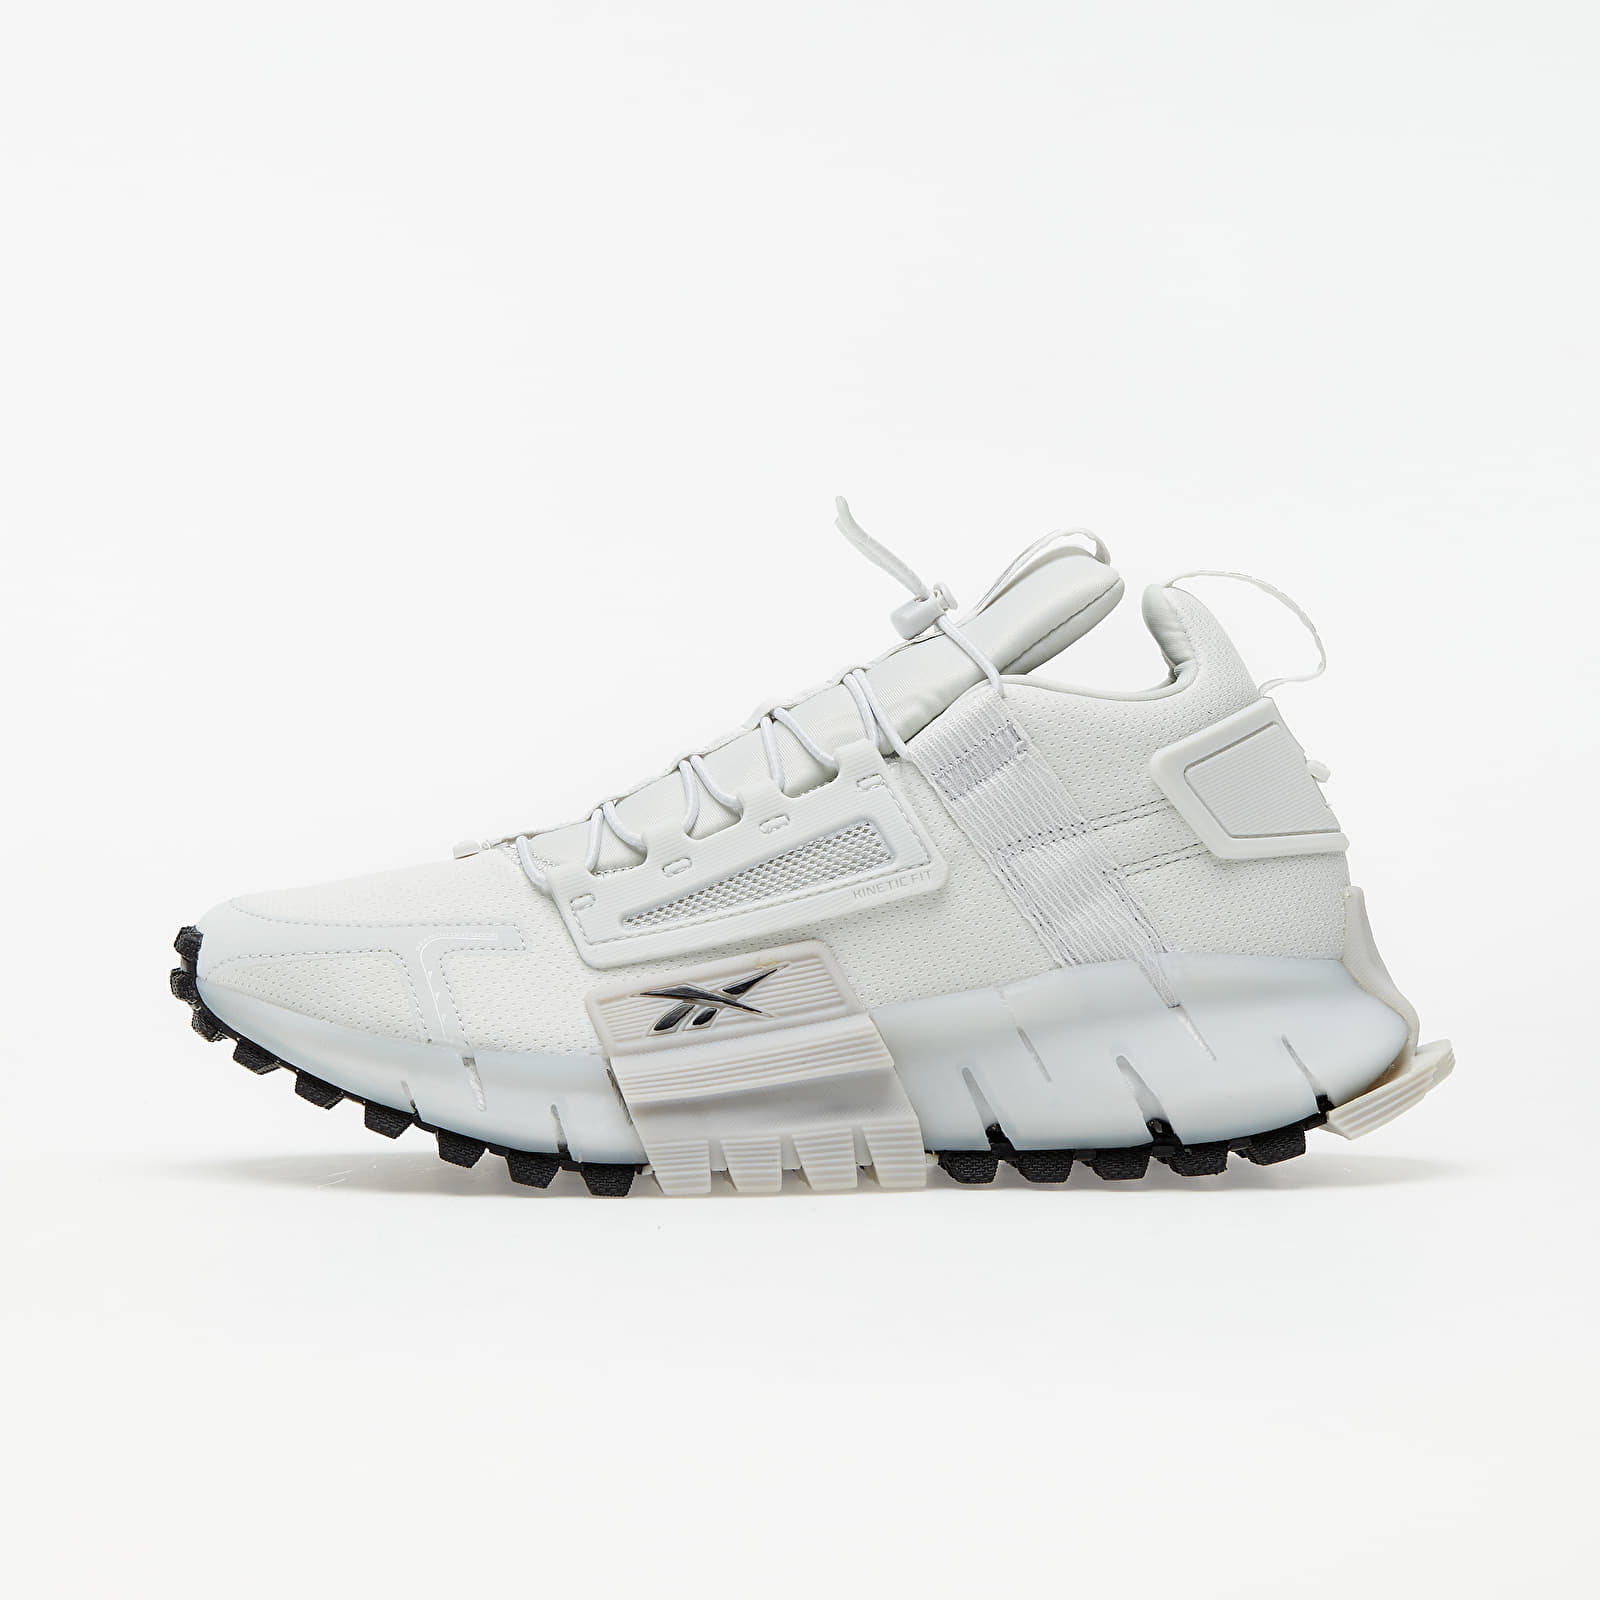 Мъжки кецове и обувки Reebok Zig Kinetica Edge Trace Grey 1/ White/ Pure Grey 2